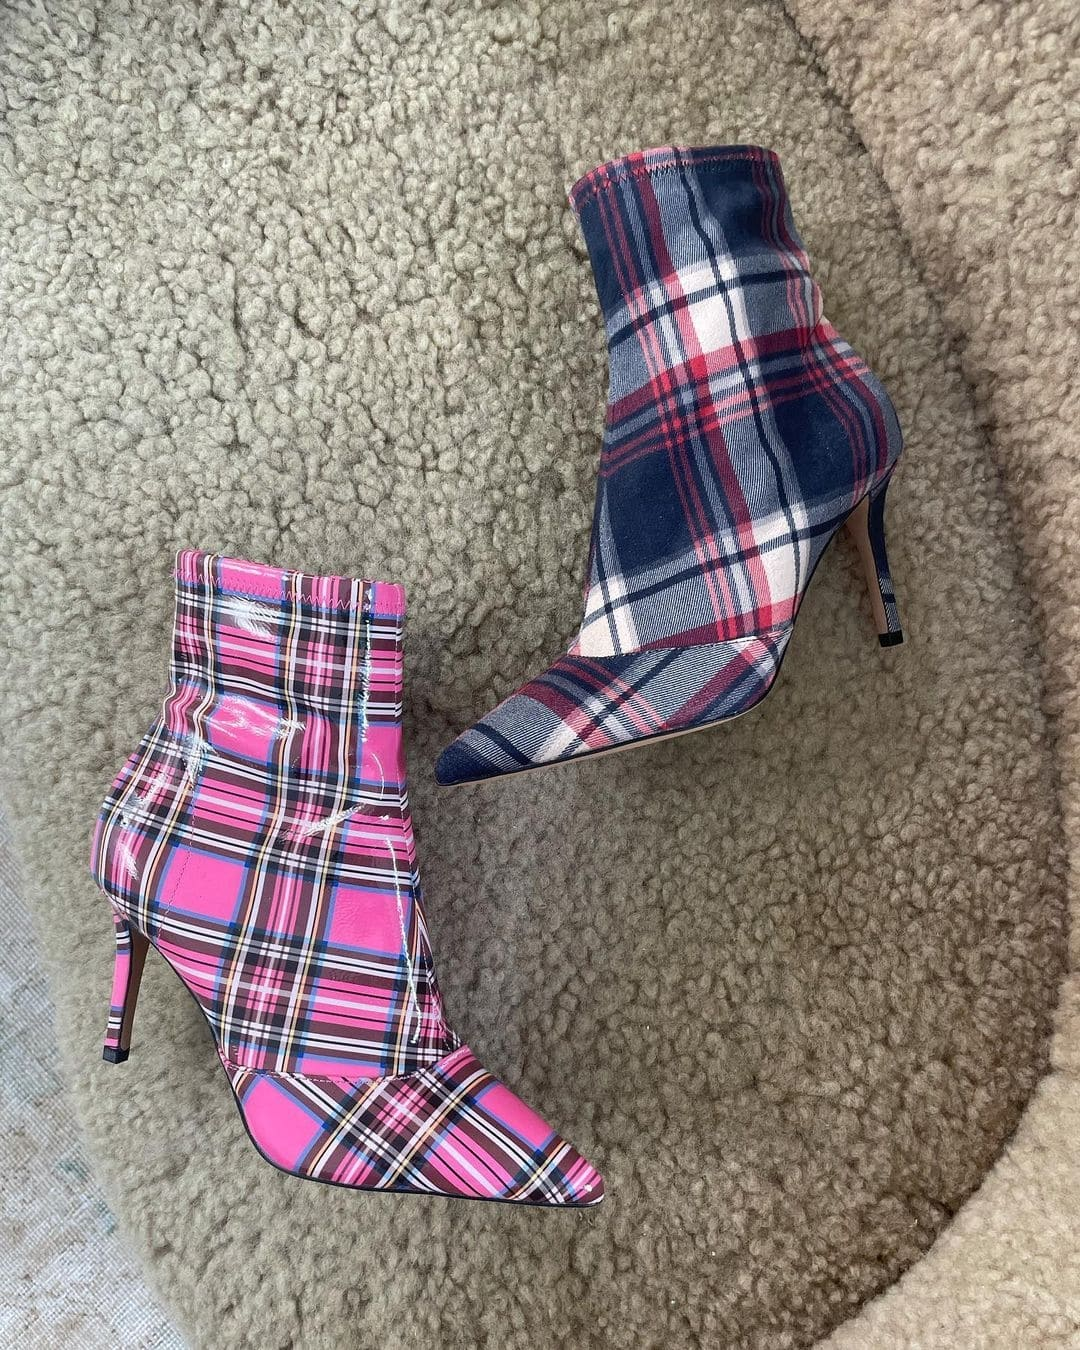 A pointy toe and high heel make this bootie from Jessica Simpson a standout choice for around-town wear